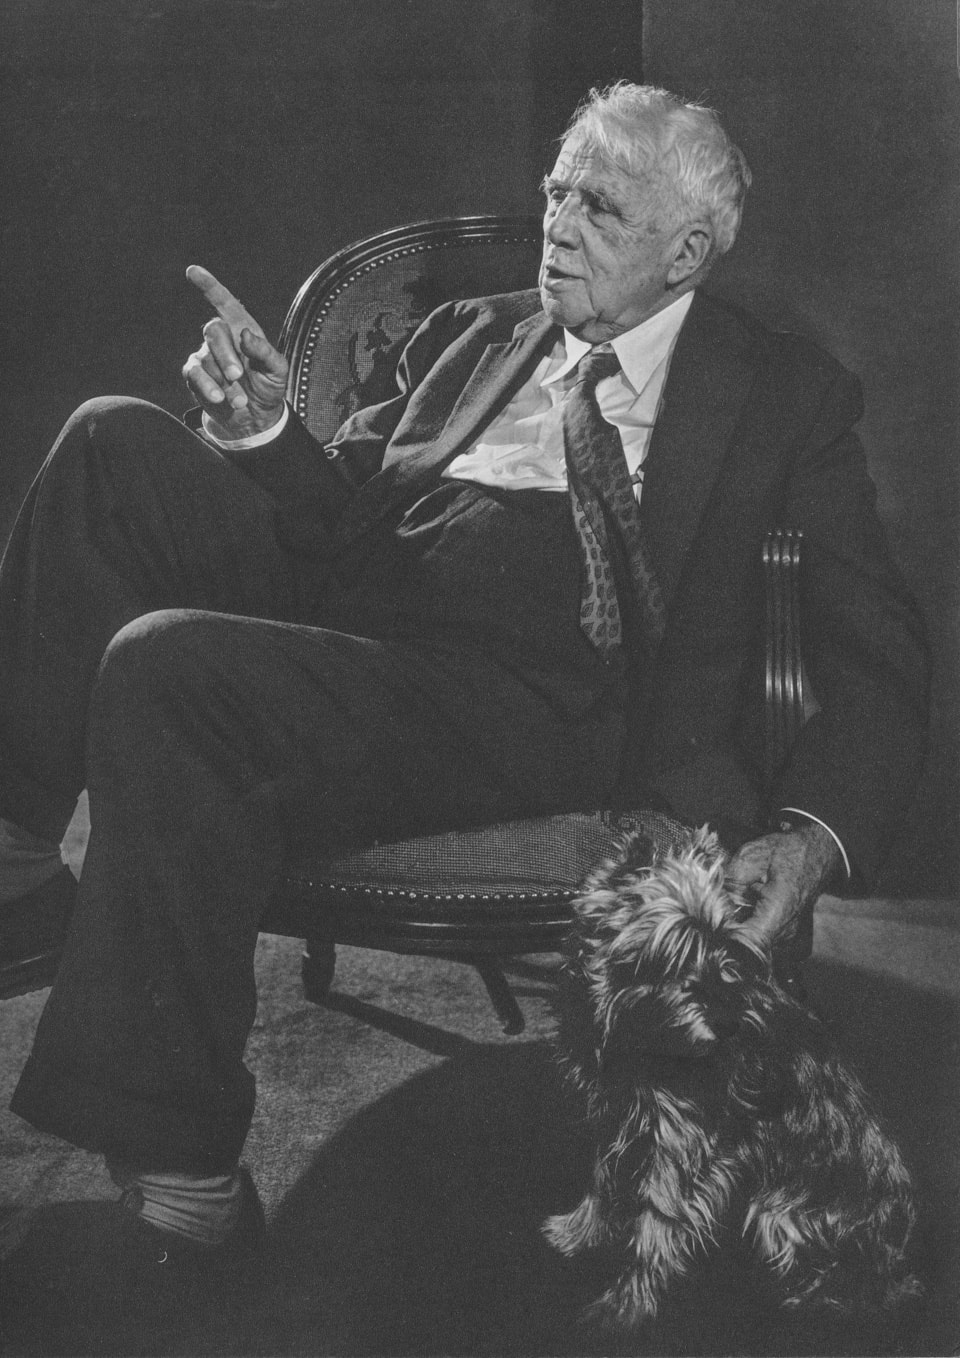 Robert Frost by Yousuf Karsh, 1958